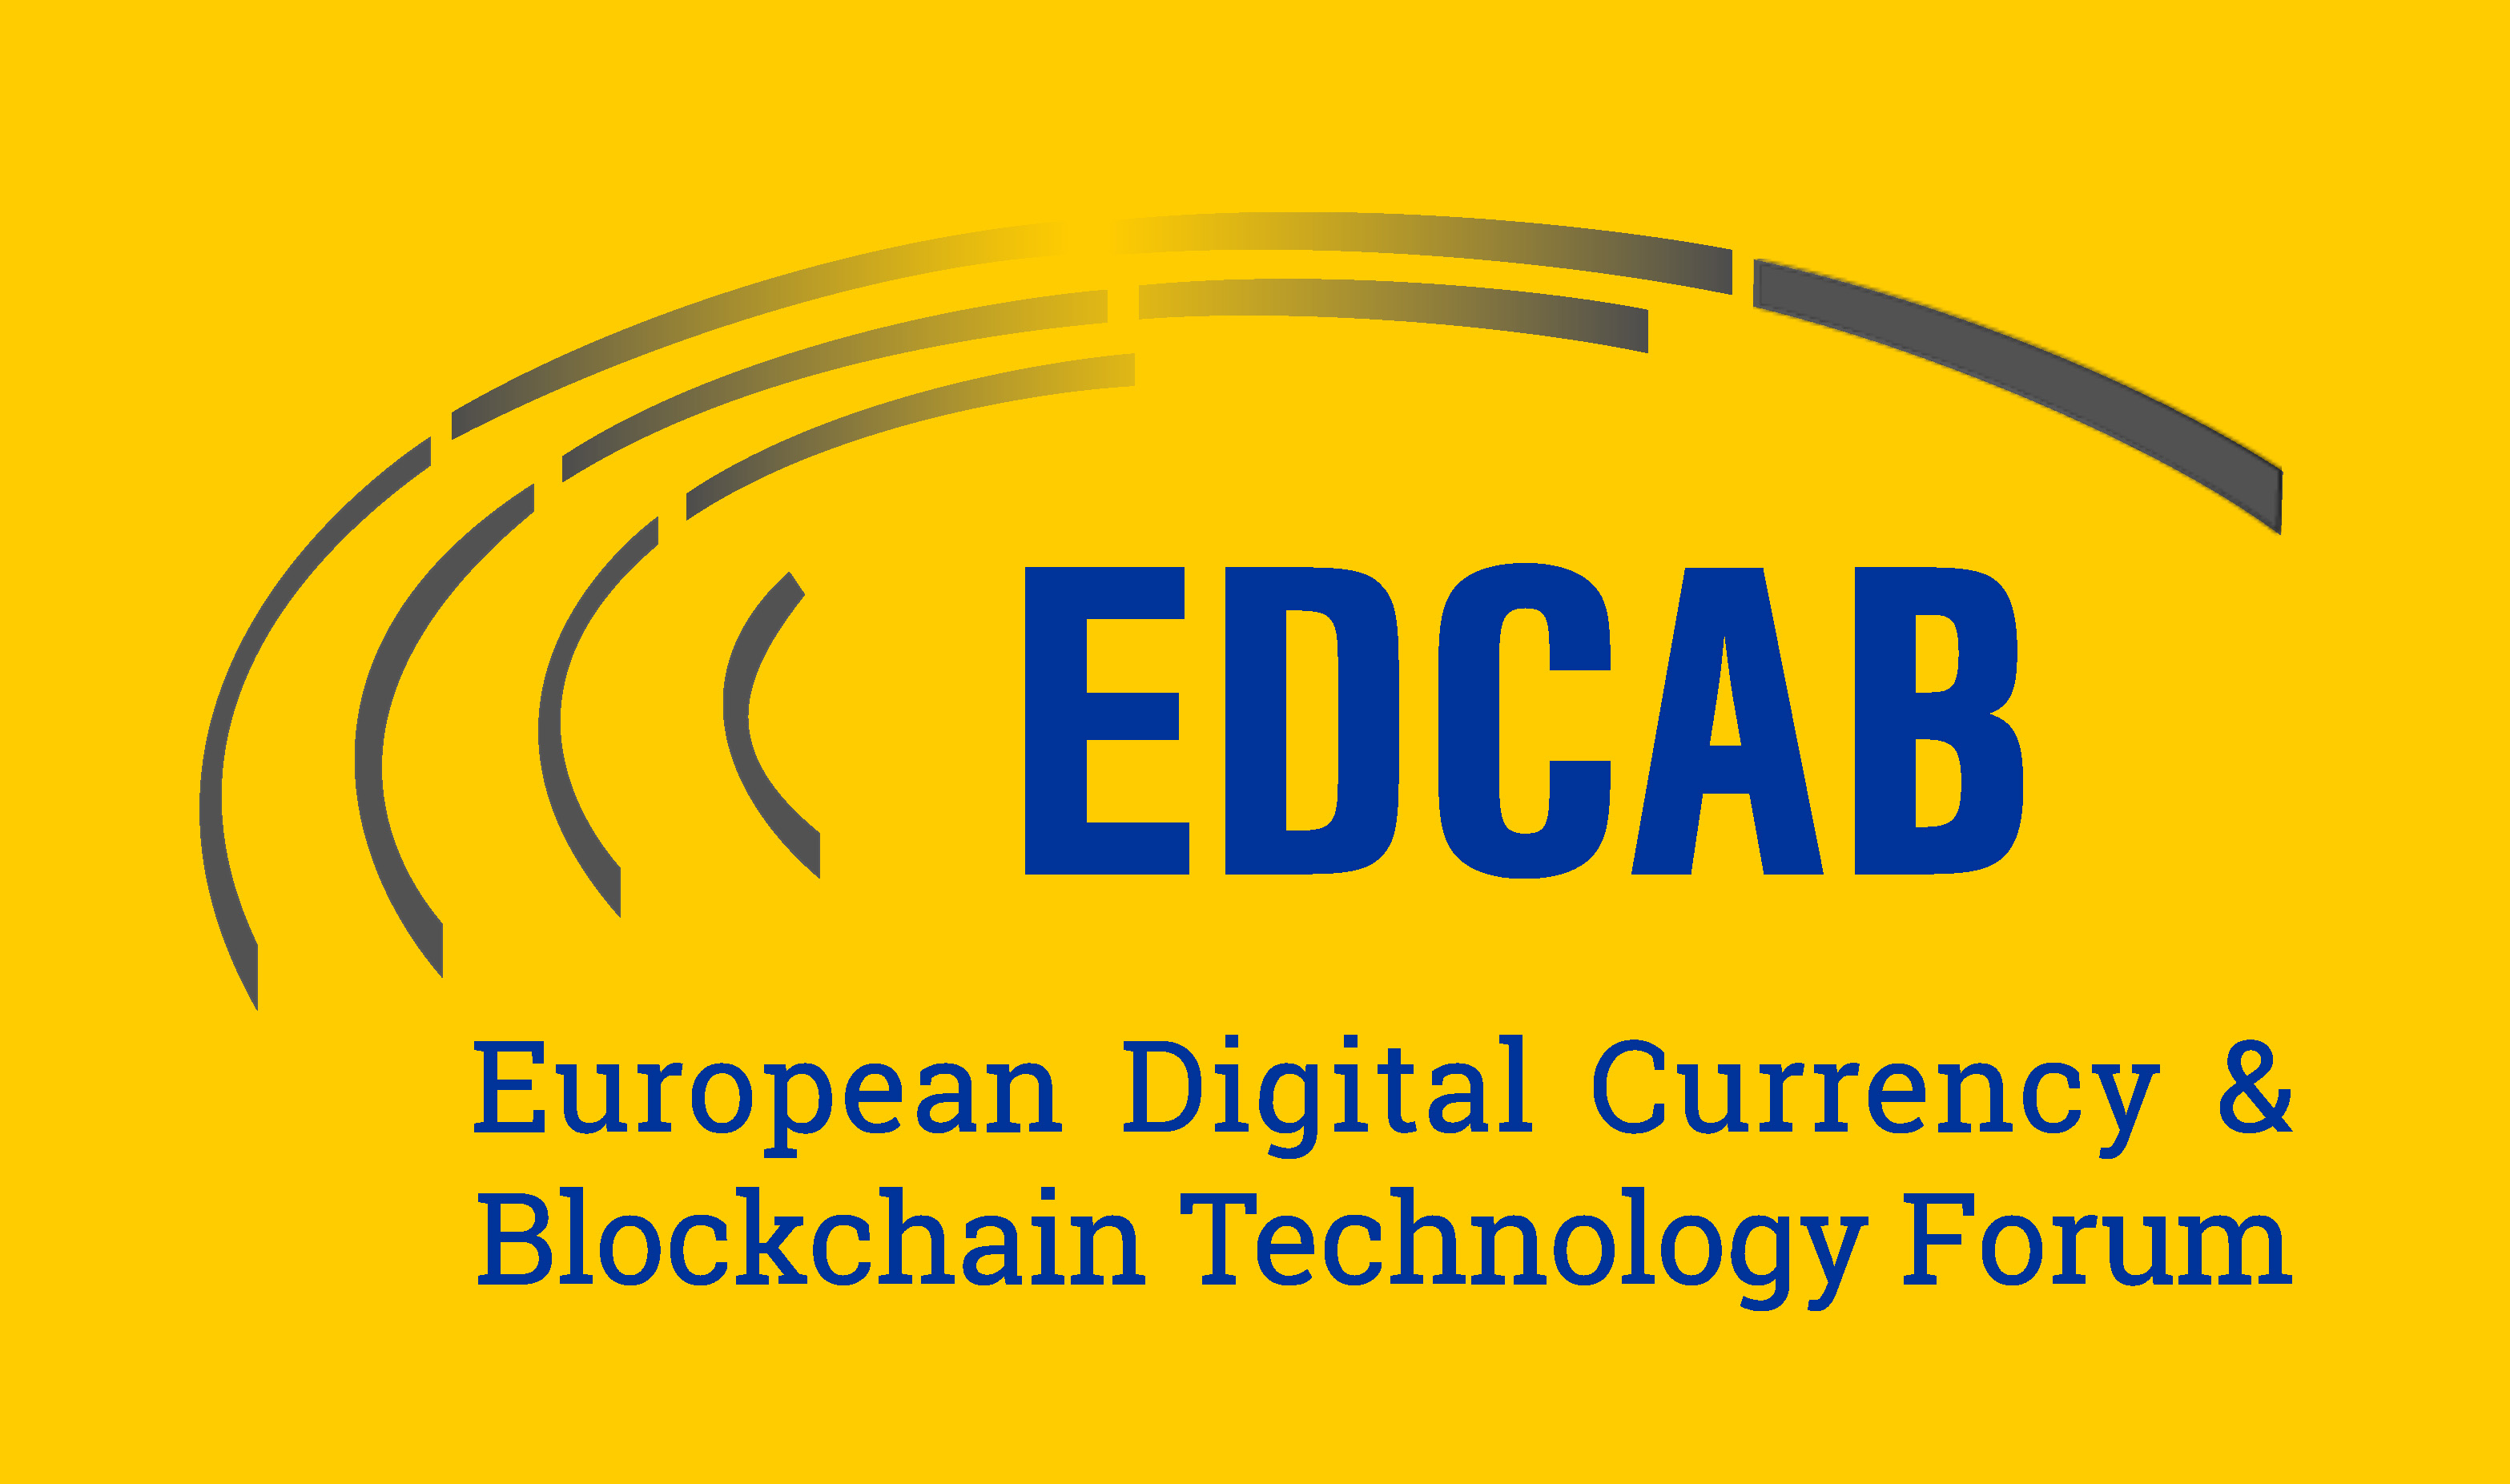 MASTER_edcab_logo_blue_text_on_yellow_double_strapline